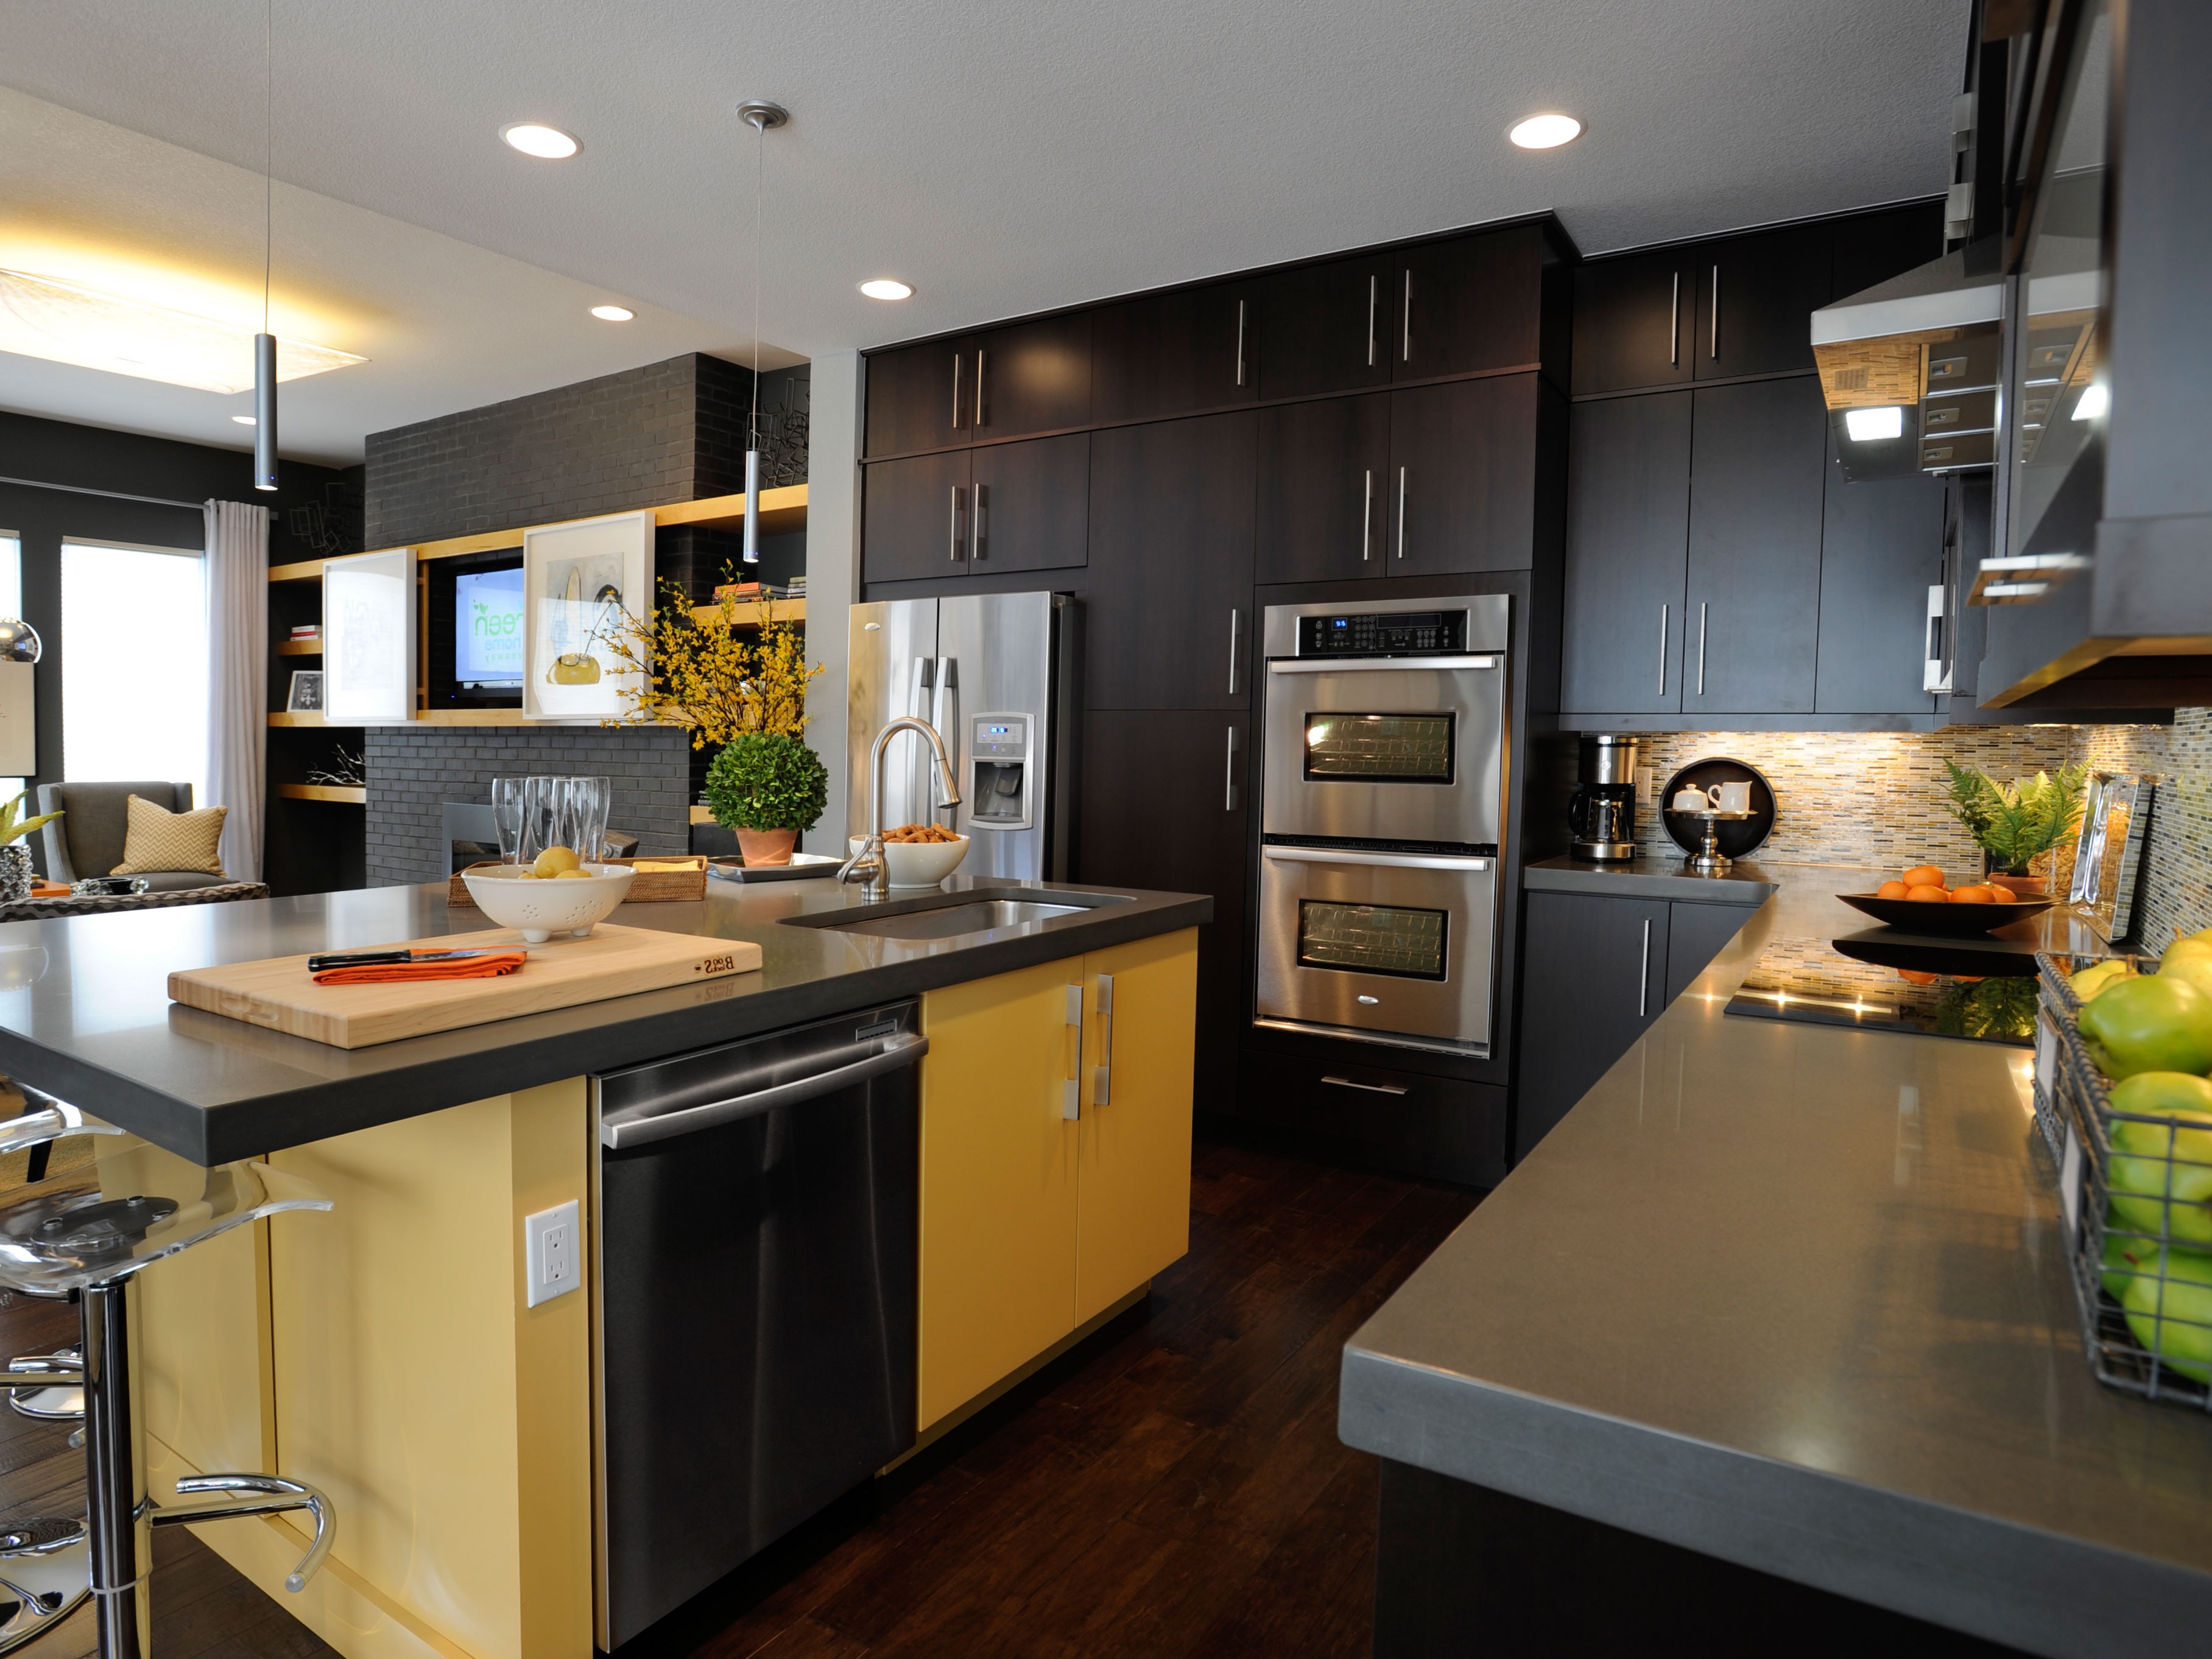 Brown Kitchen Cabinets And Stainless Steel Appliances (Image 2 of 18)